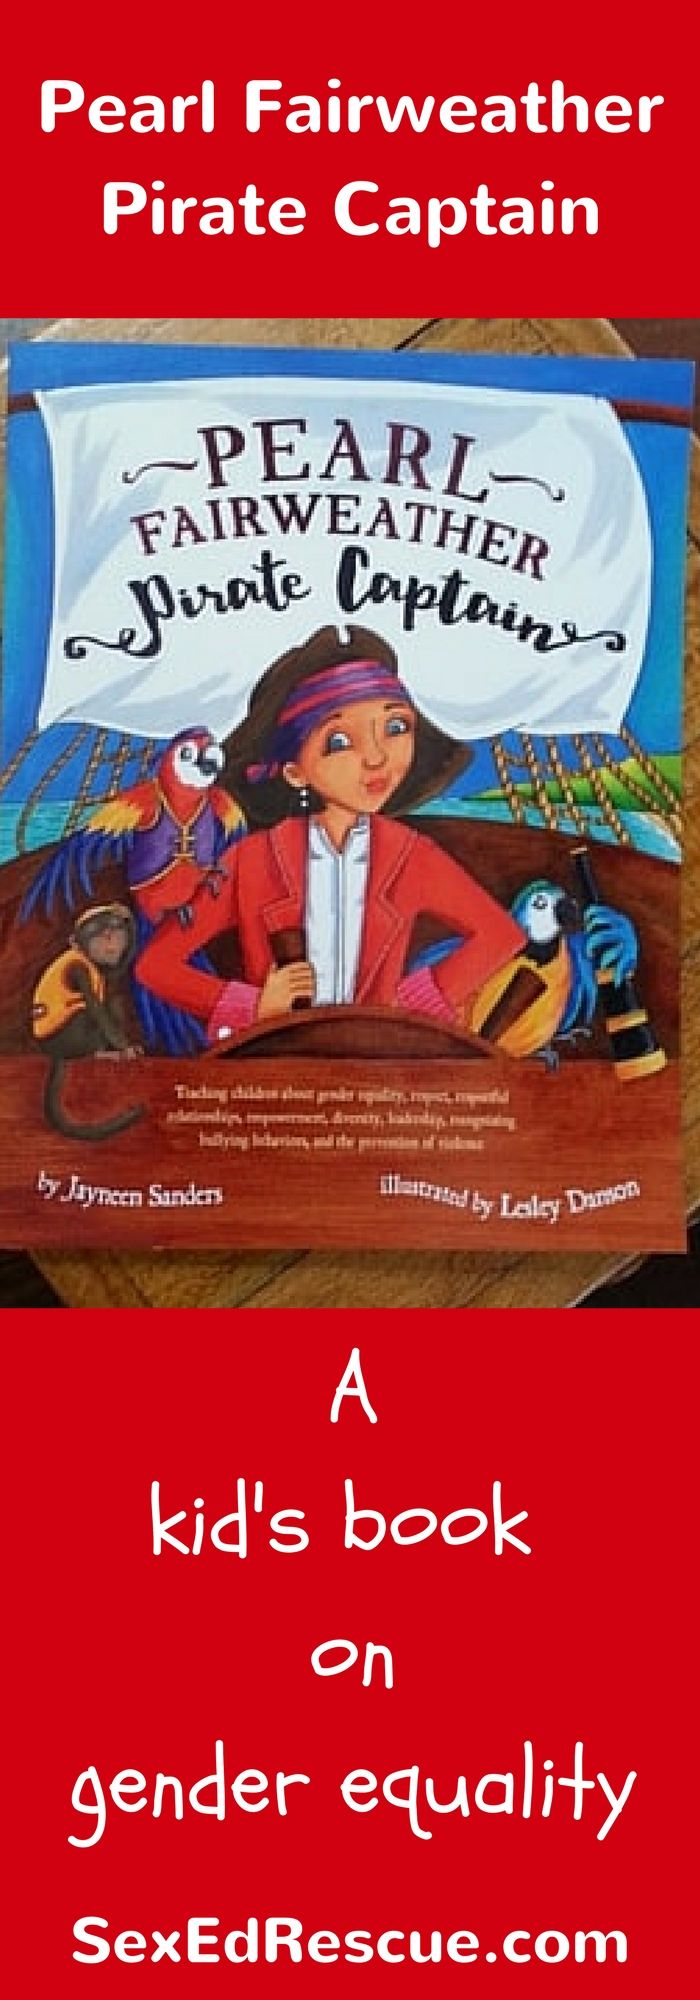 Pearl Fairweather Pirate Captain by Jayneen Sanders ensures that girls (and boys) grow up knowing that they are equal! A must have book for all families.